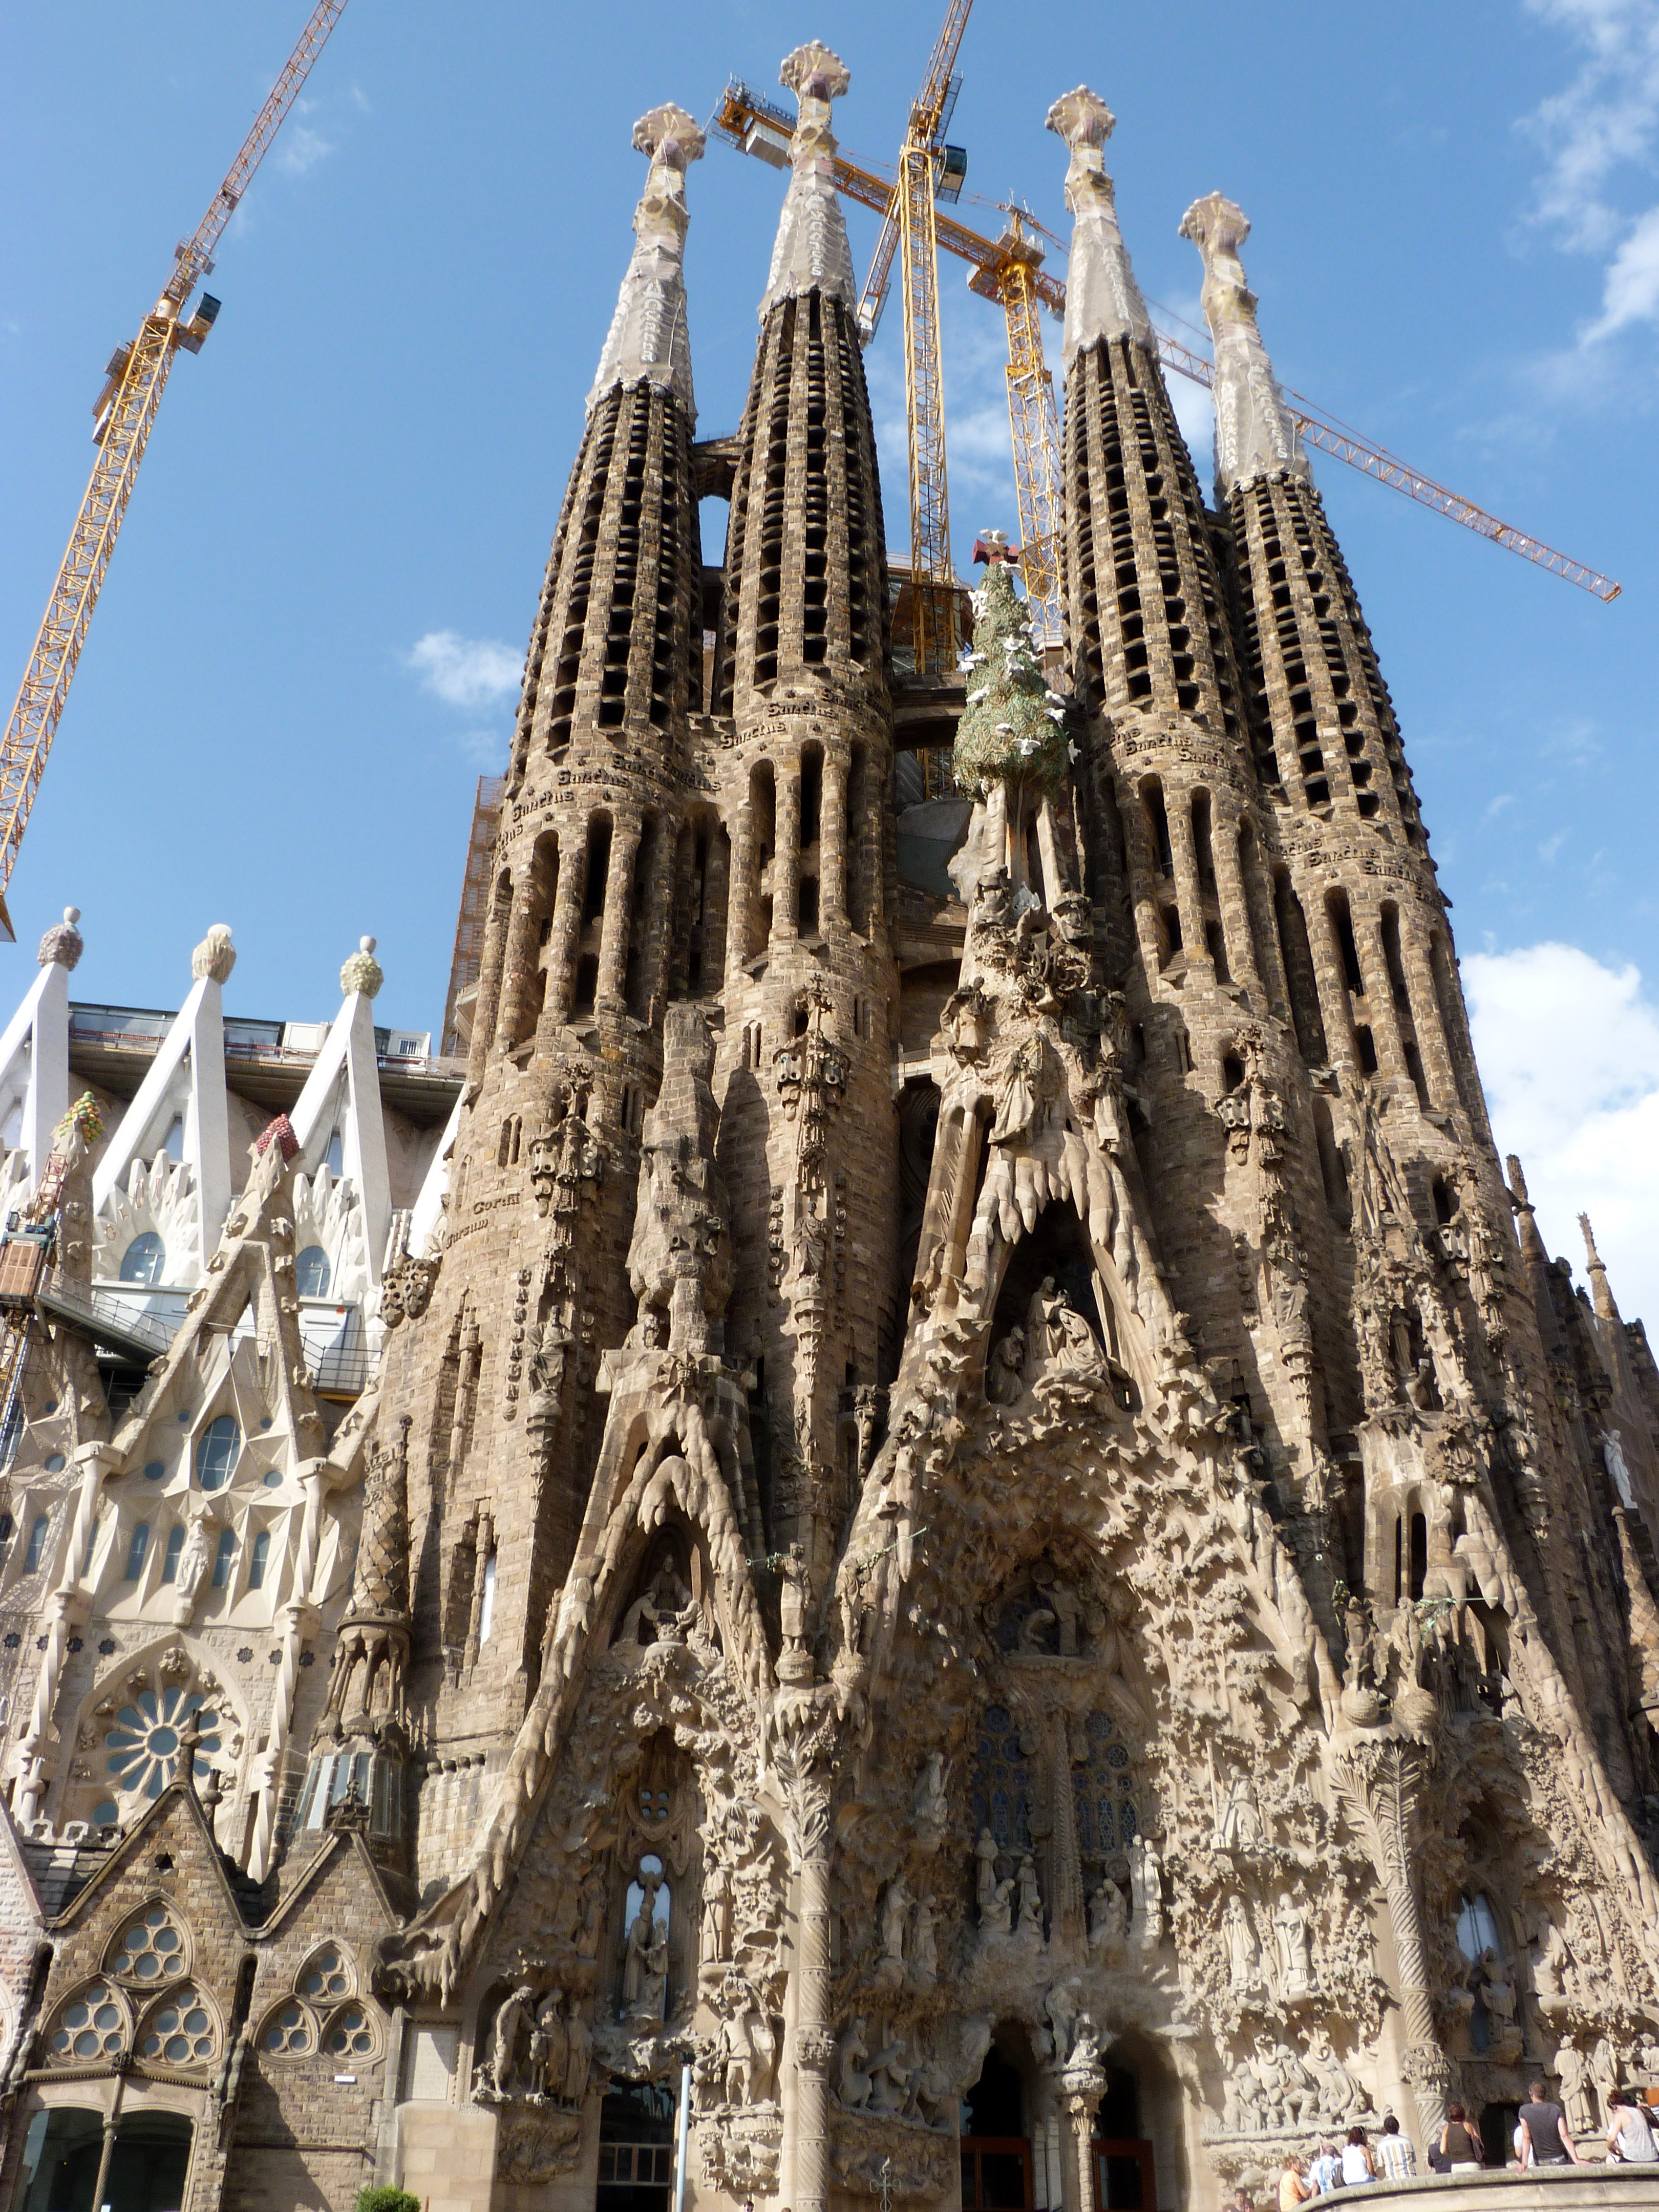 la sagrada familia The stunning la sagrada família is a must-see for any tourist passing through barcelona the towering, still-under-construction basilica is beloved architect antoni gaudí's most celebrated work.